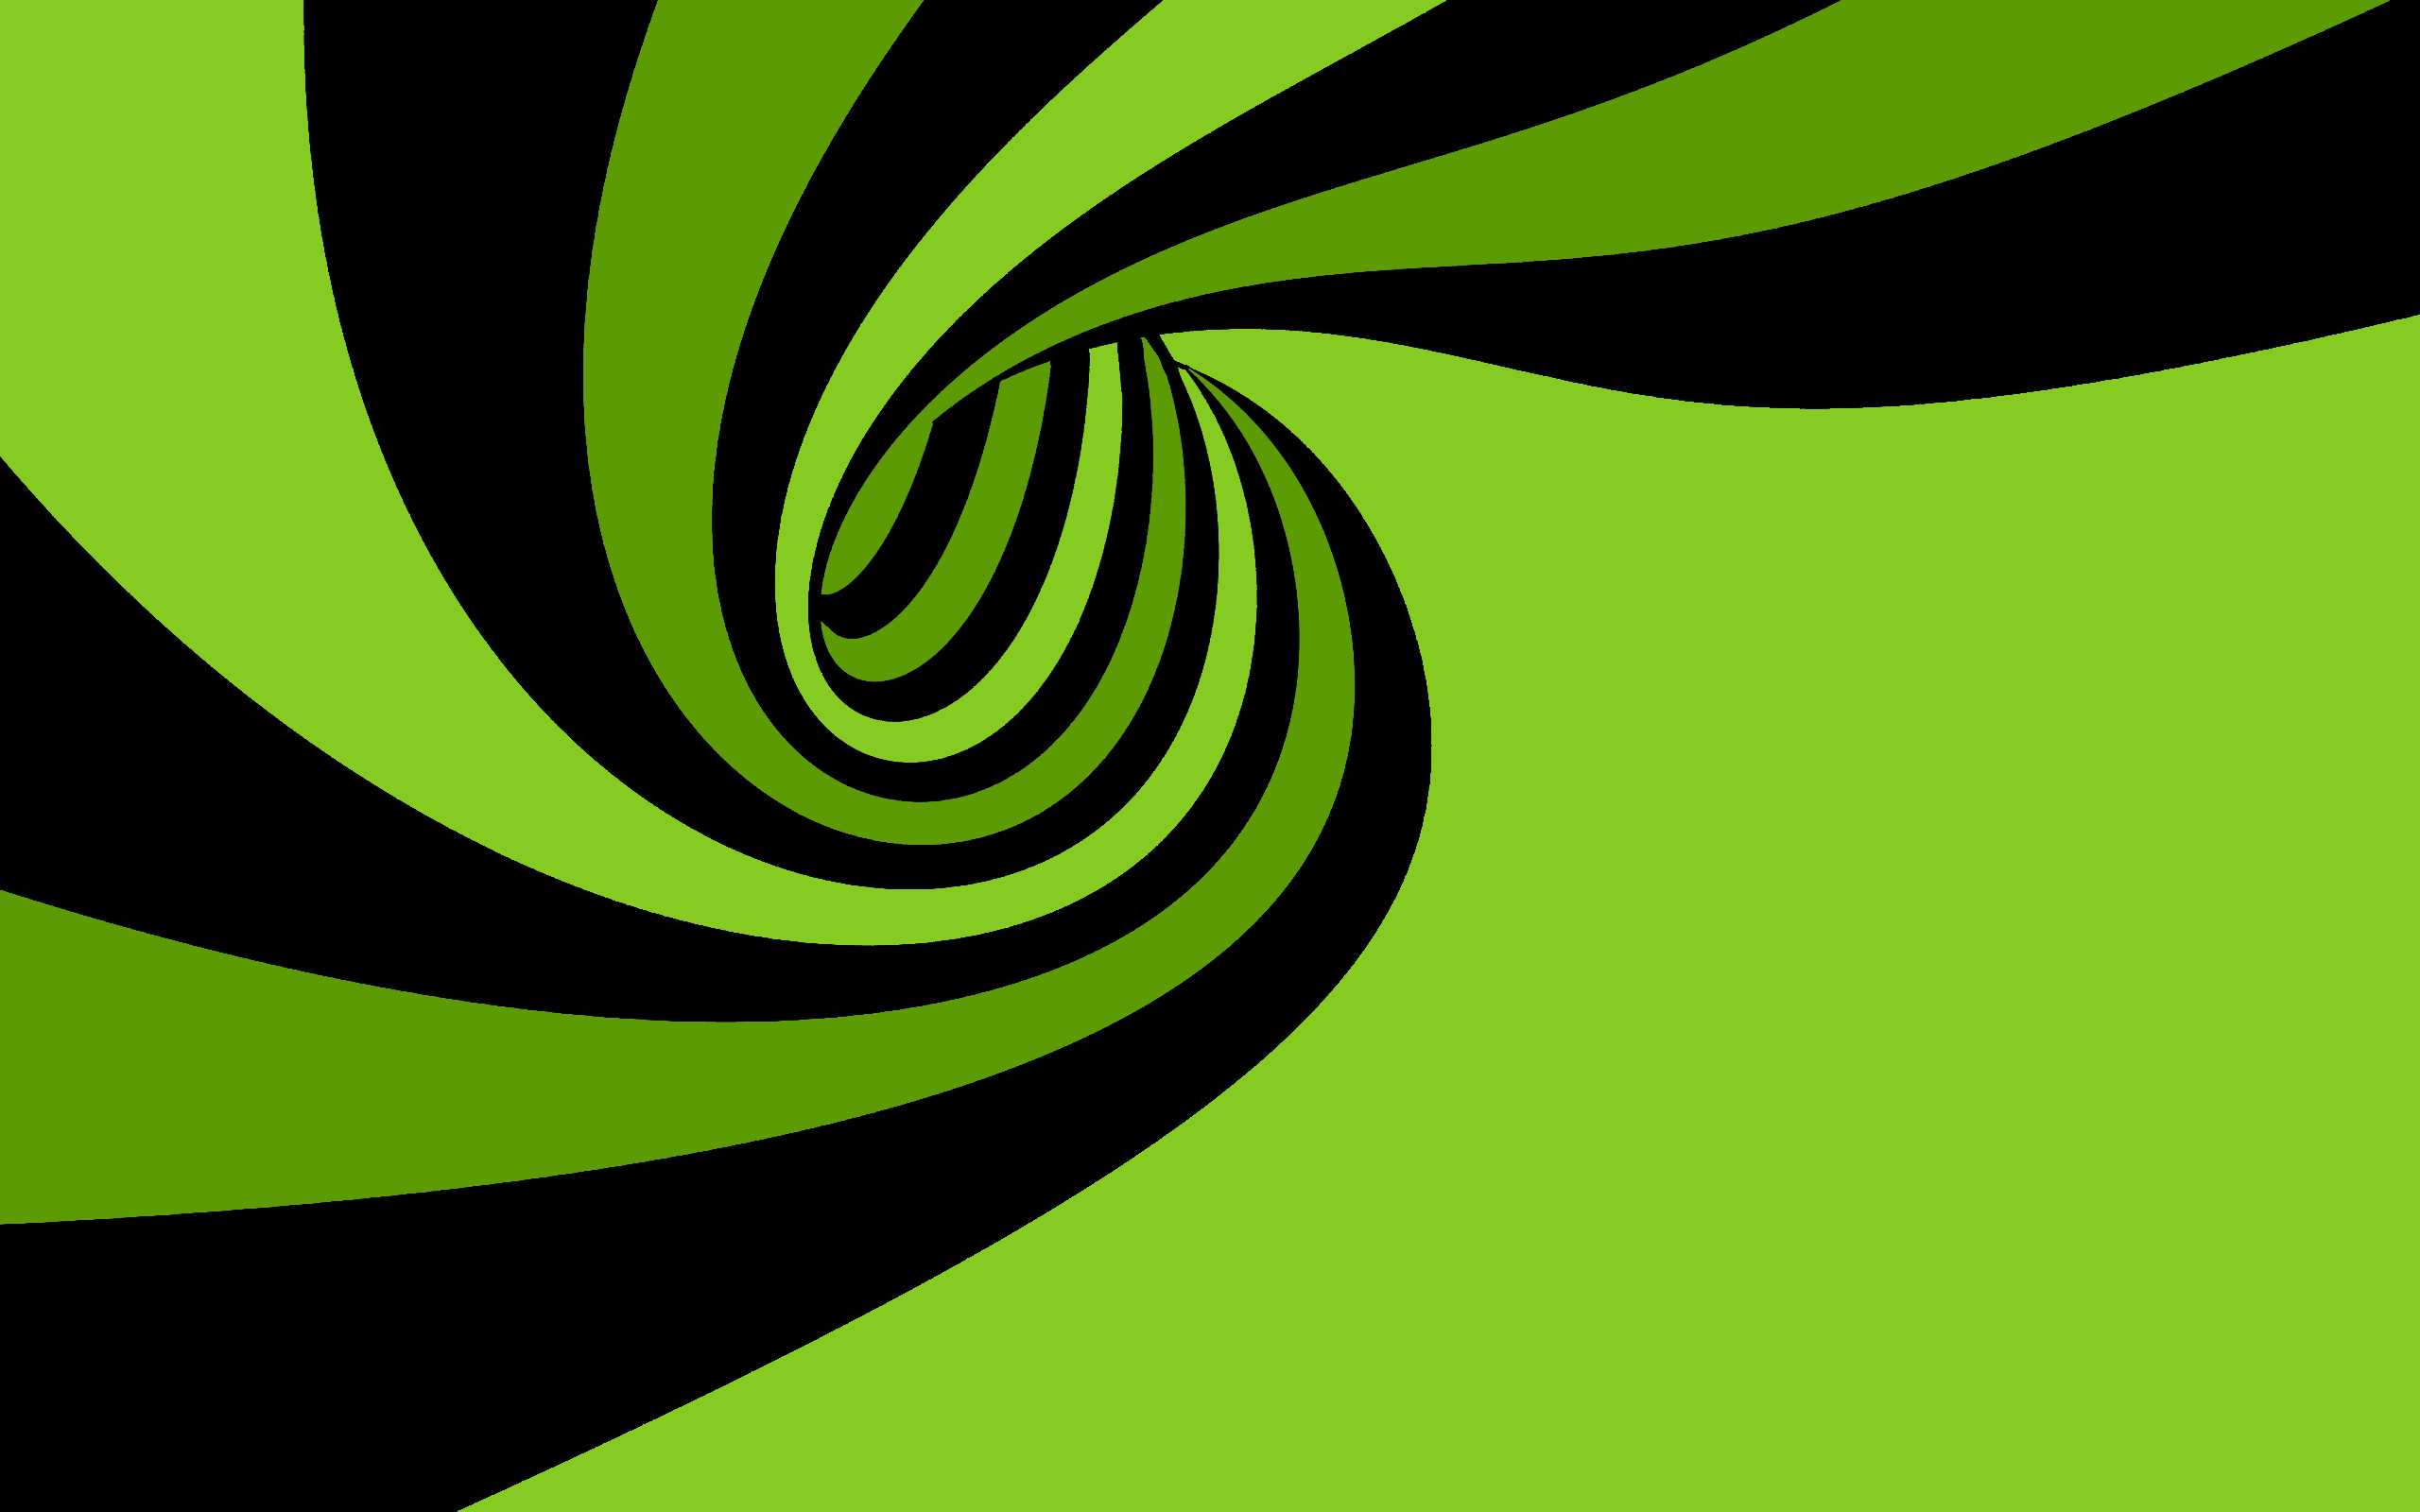 Green Spiral Wallpaper 2560×1600